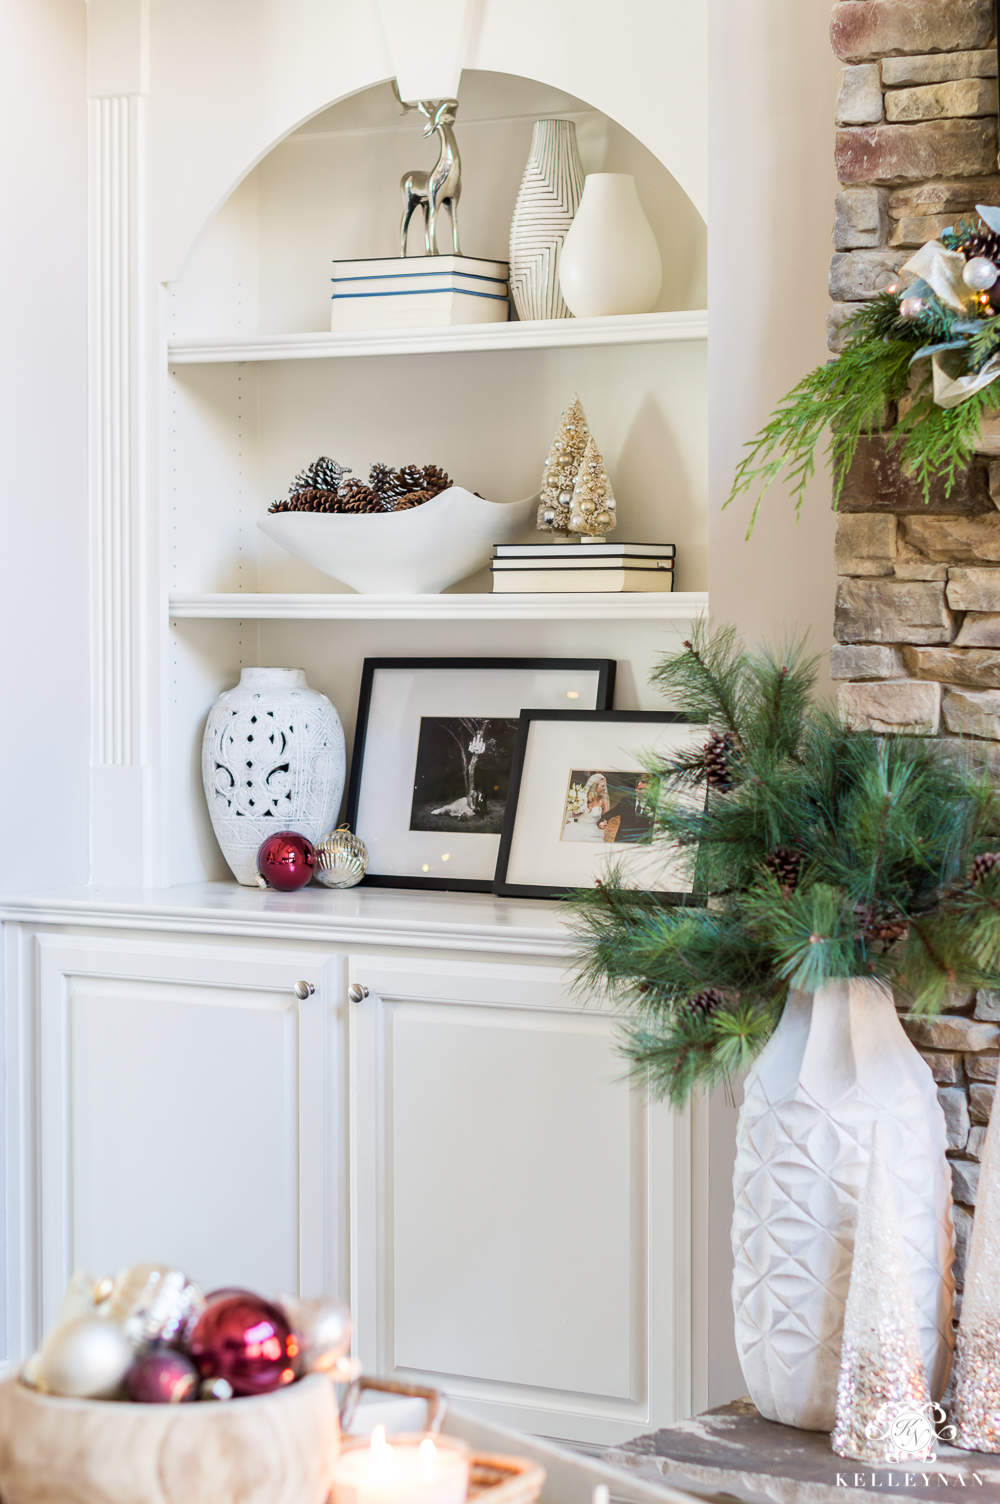 Simple shelf styling ideas for Christmas